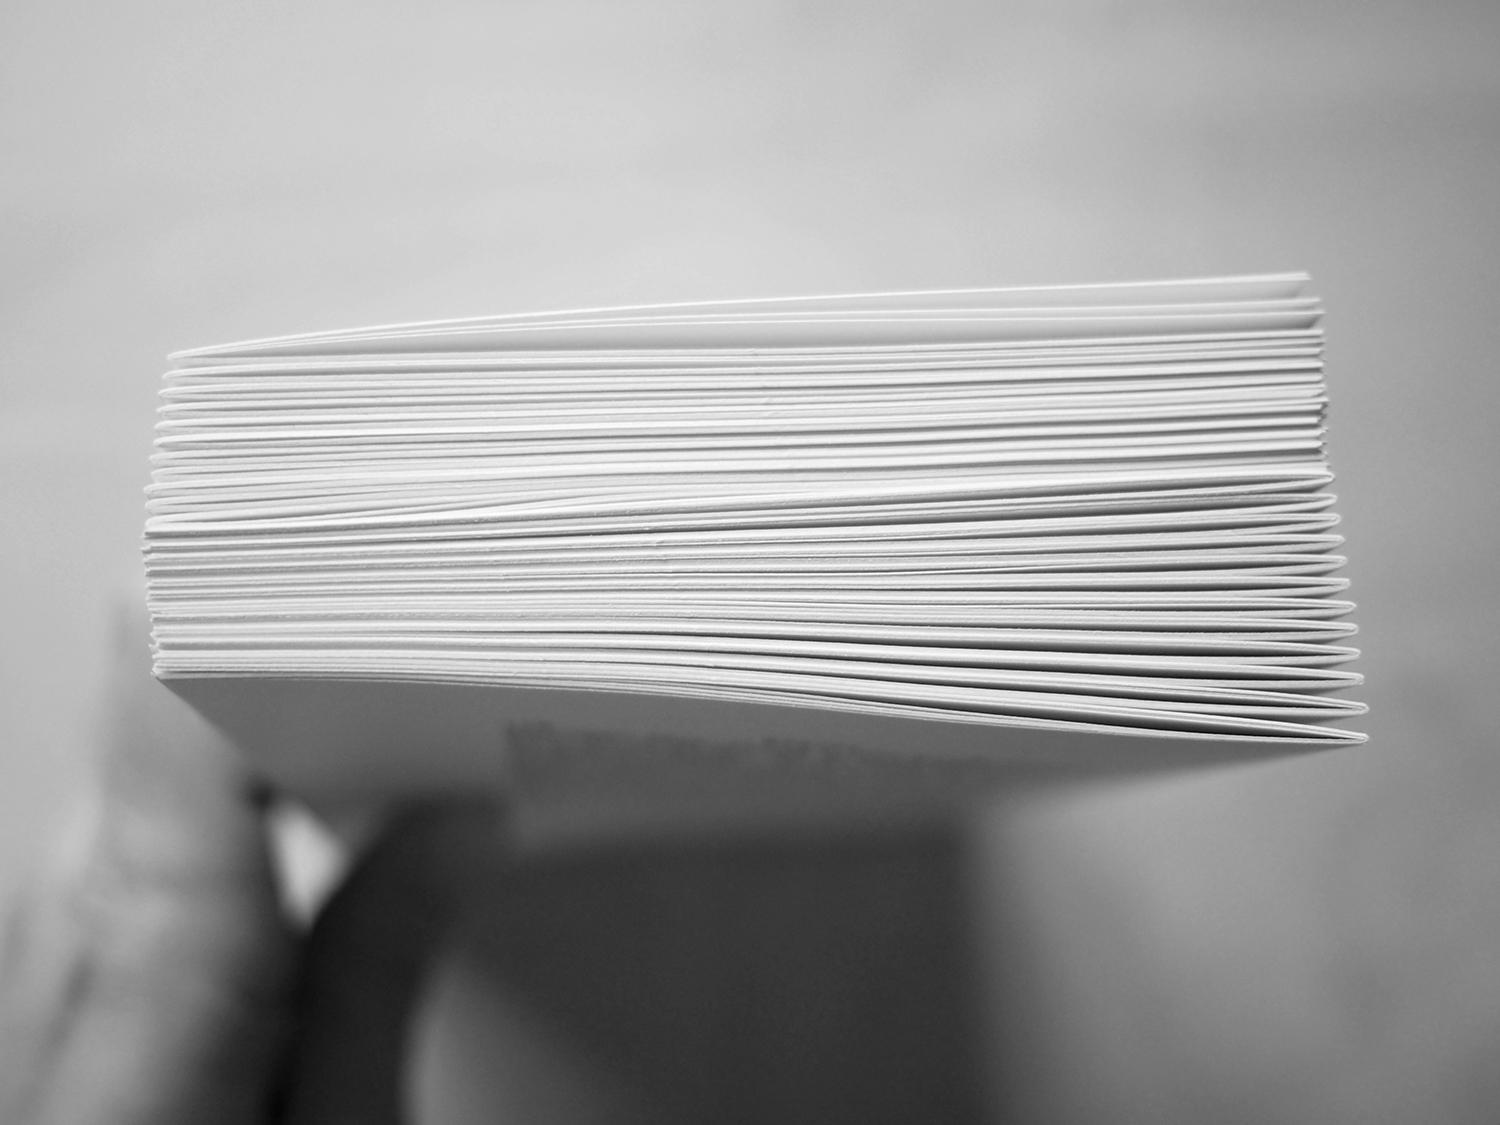 This one has already been pressed so don't look at the sharpness of the folds but see here how you can alternate the spine folds so that you get a more manageable stack.